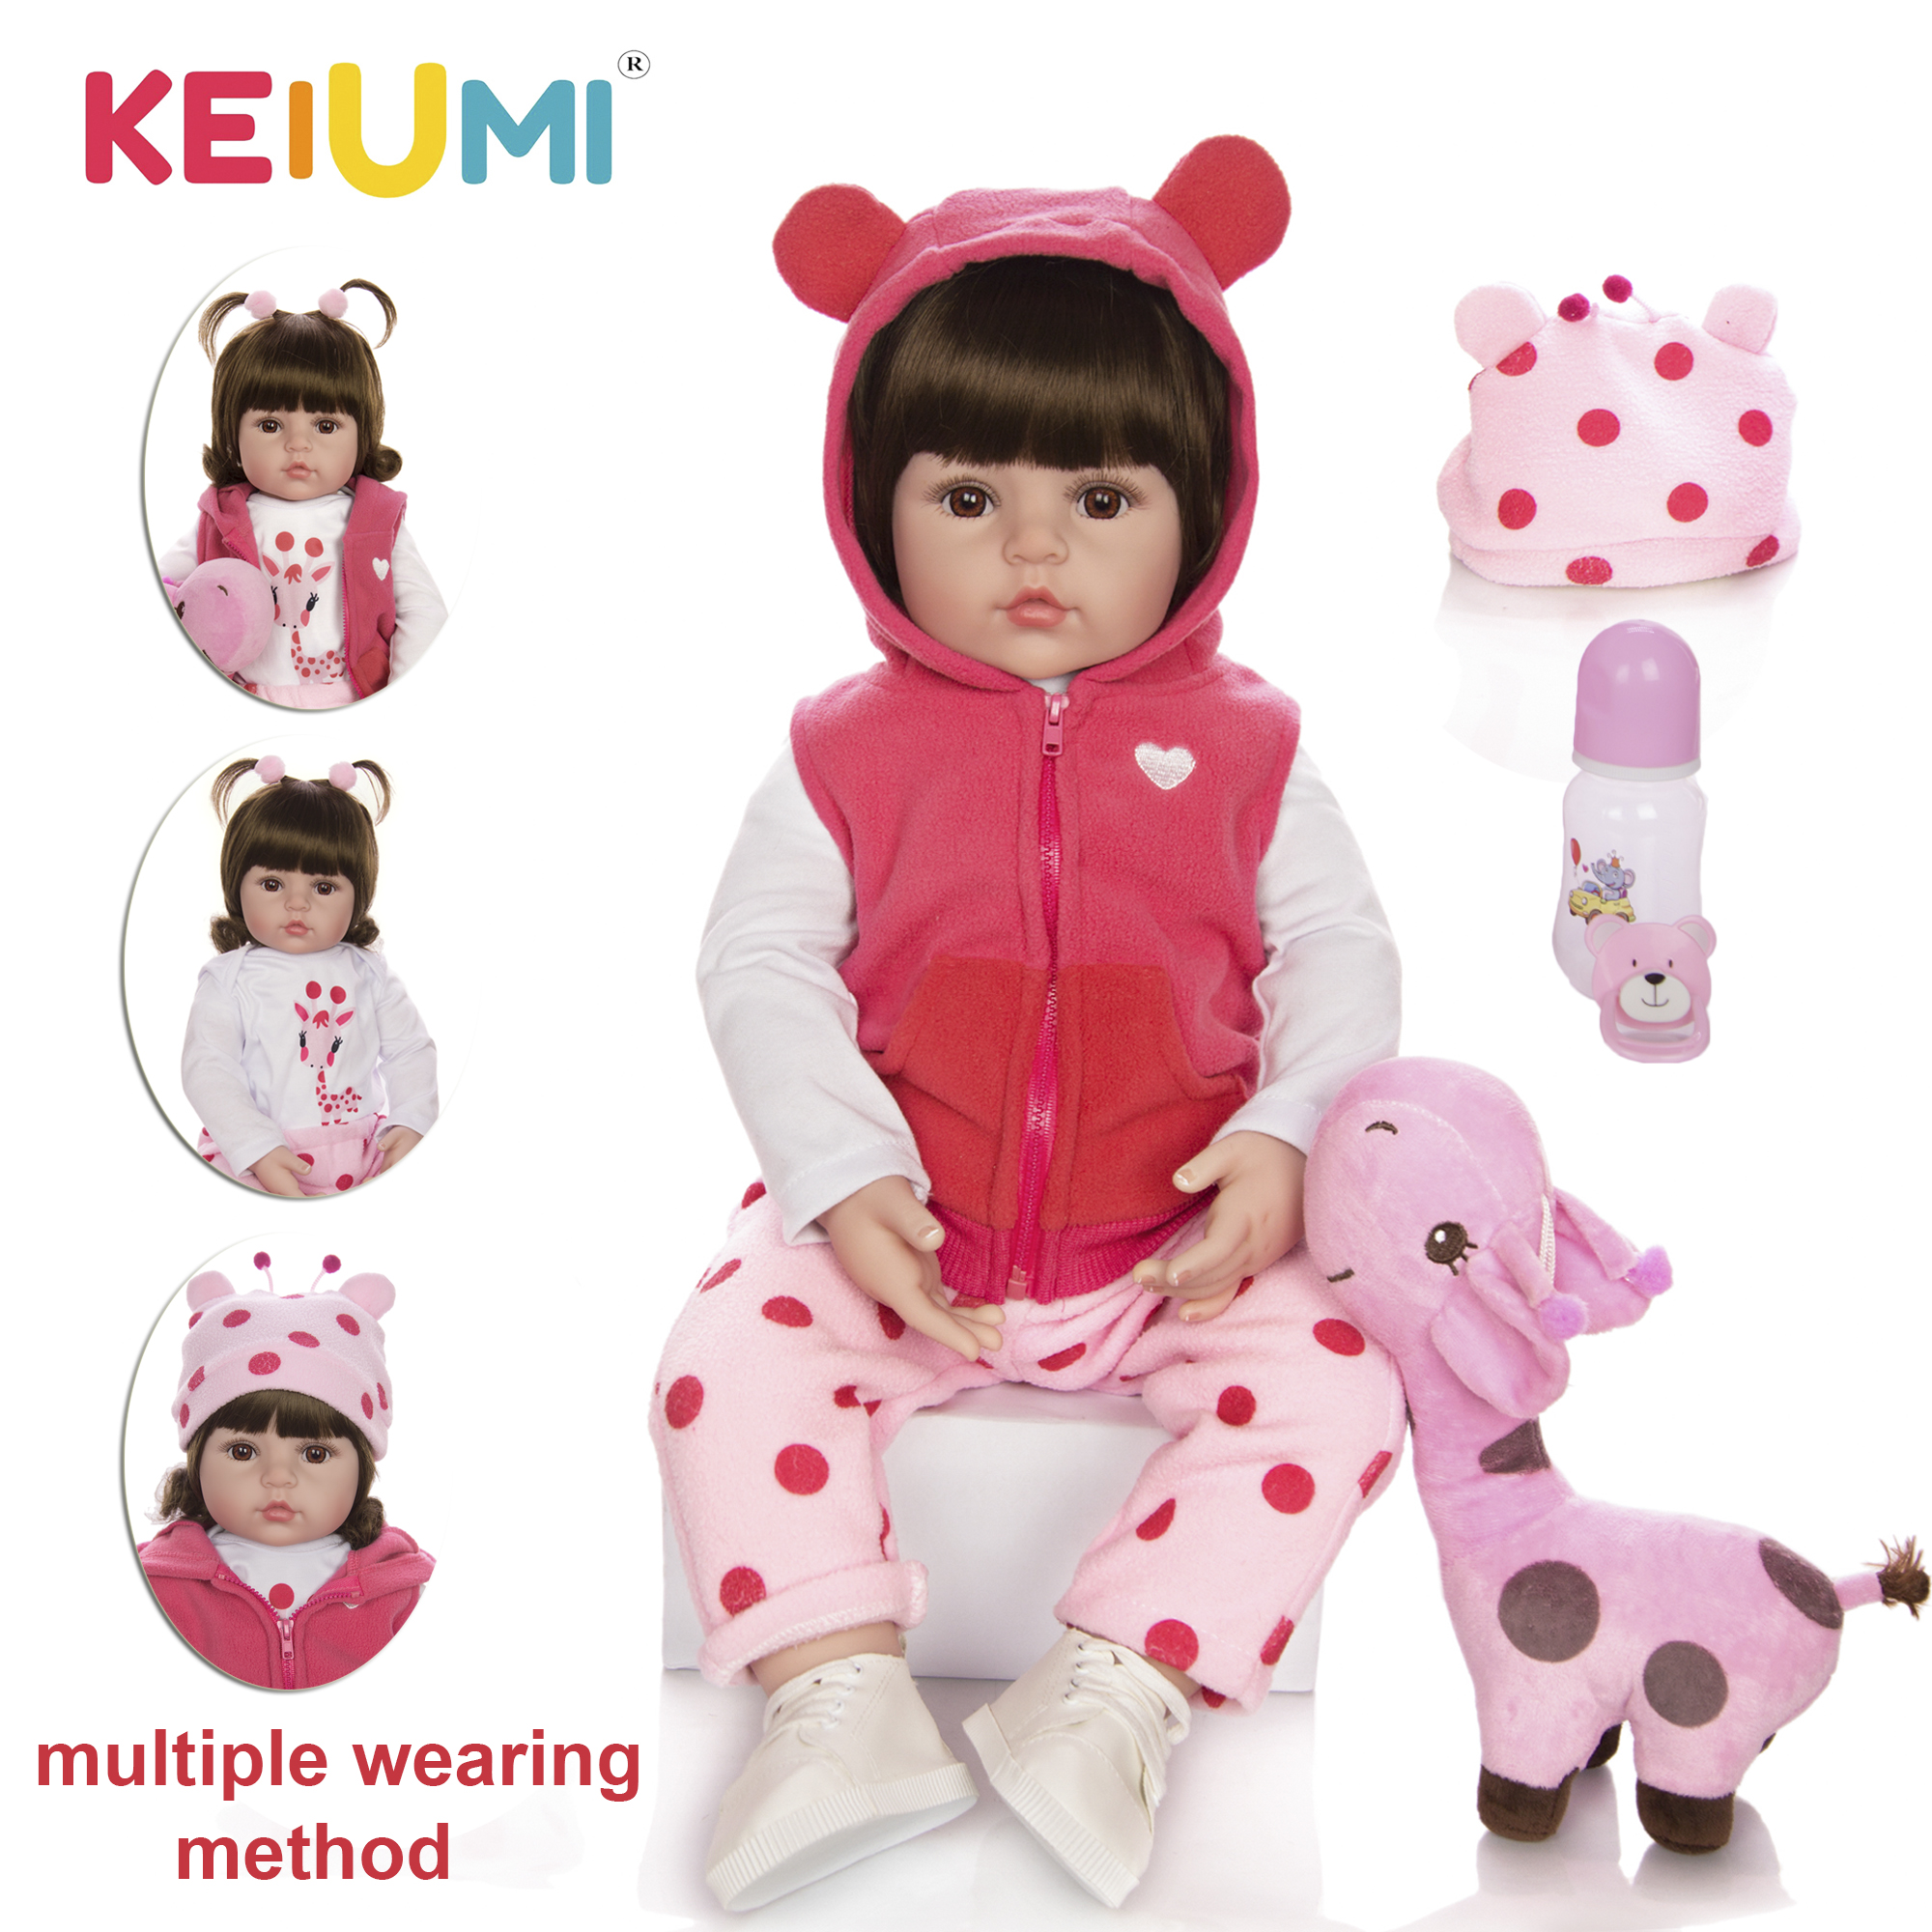 KEIUMI Baby Reborn Real Menina Soft Silicone Reborn Baby Dolls Birthday Gifts Fashion Stuffed Doll Toys